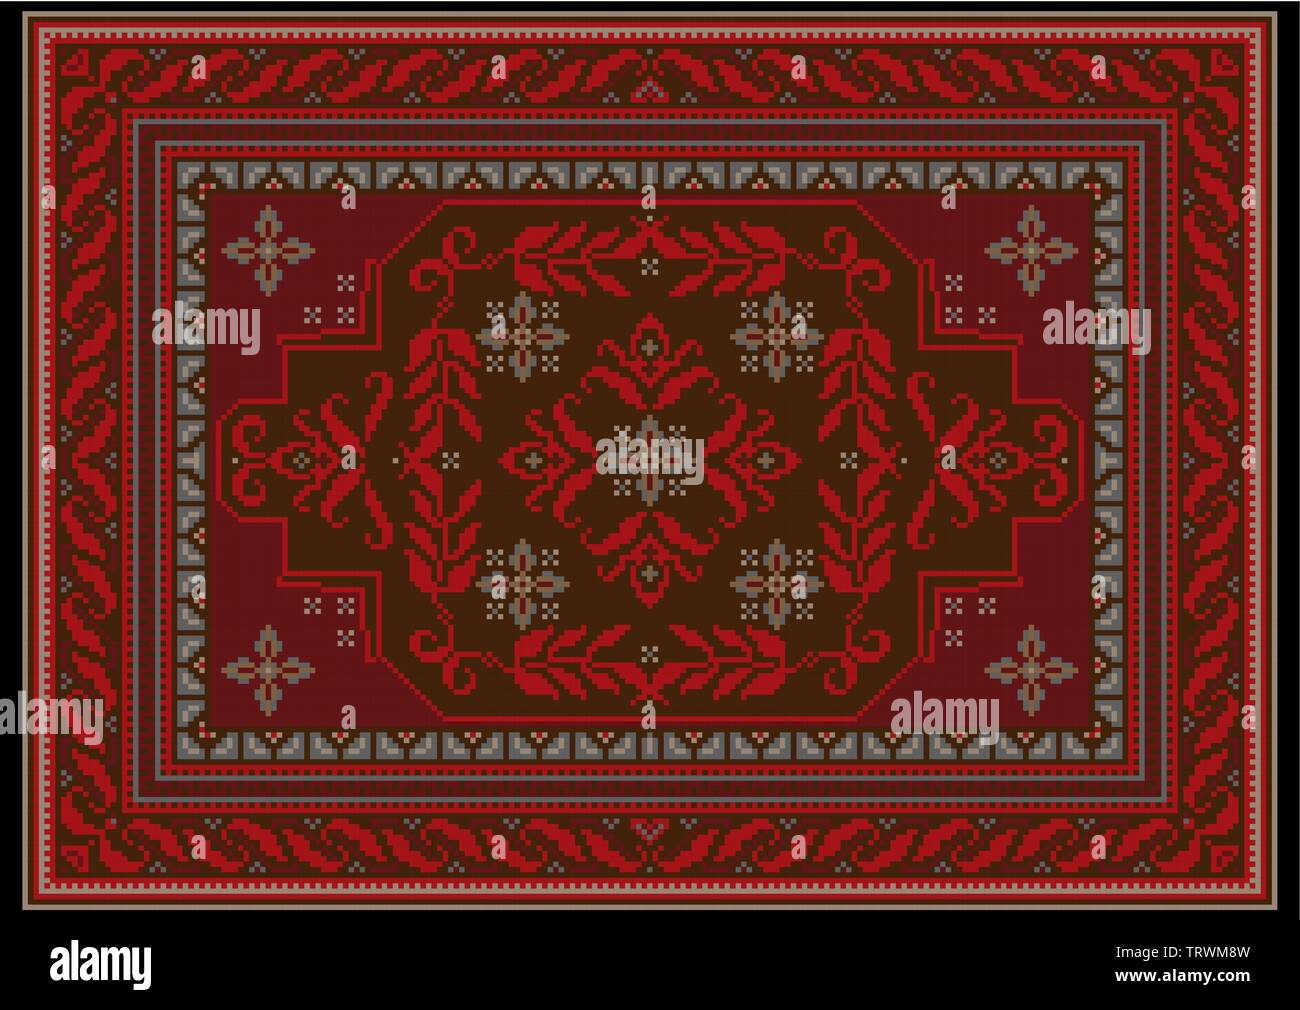 Carpet design with ethnic ornament of red and burgundy shades and red floral pattern on brown on the middle - Stock Image